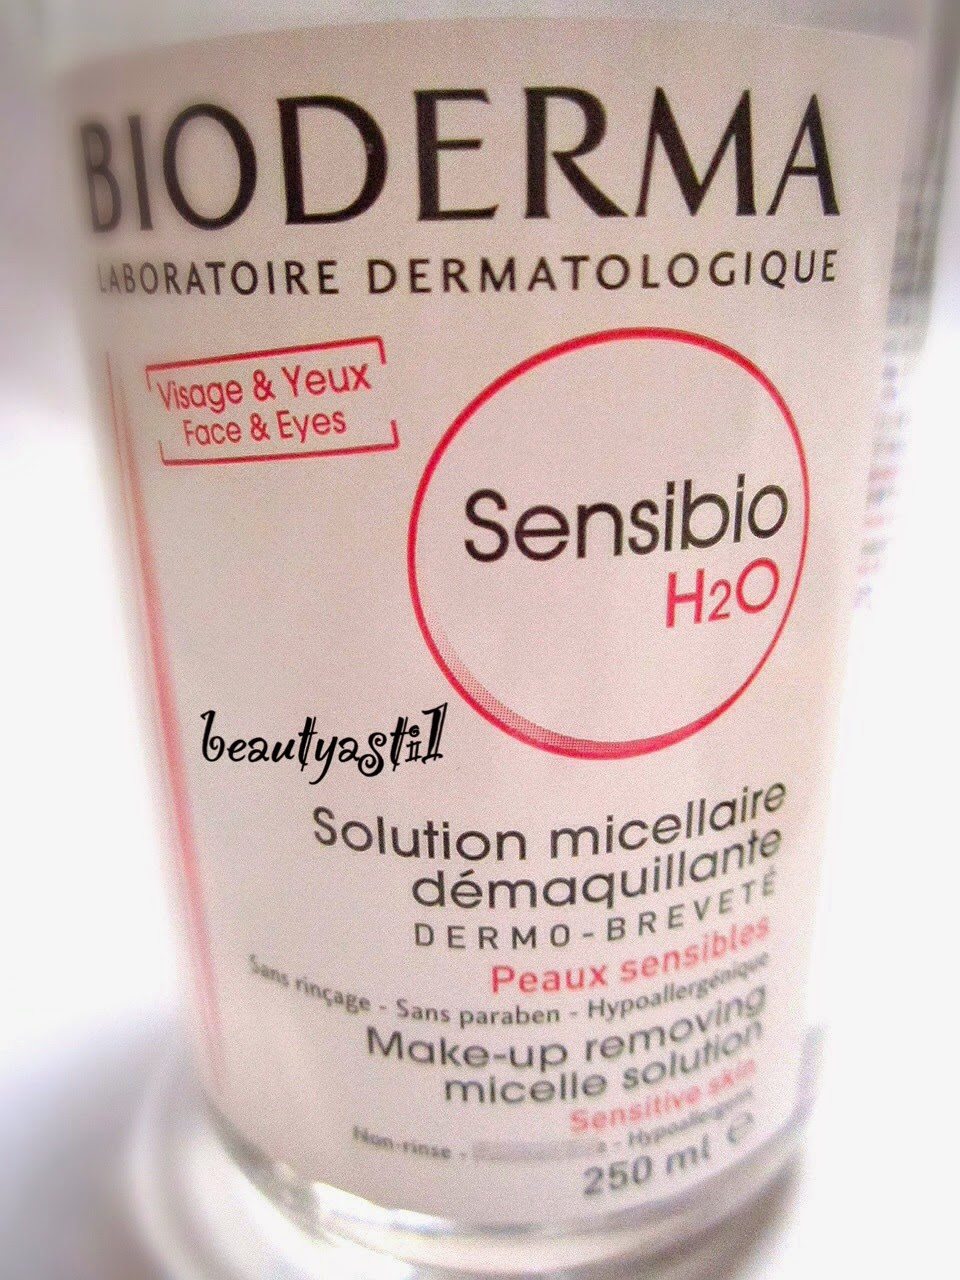 bioderma-sensibio-h2o-ingredients.jpg